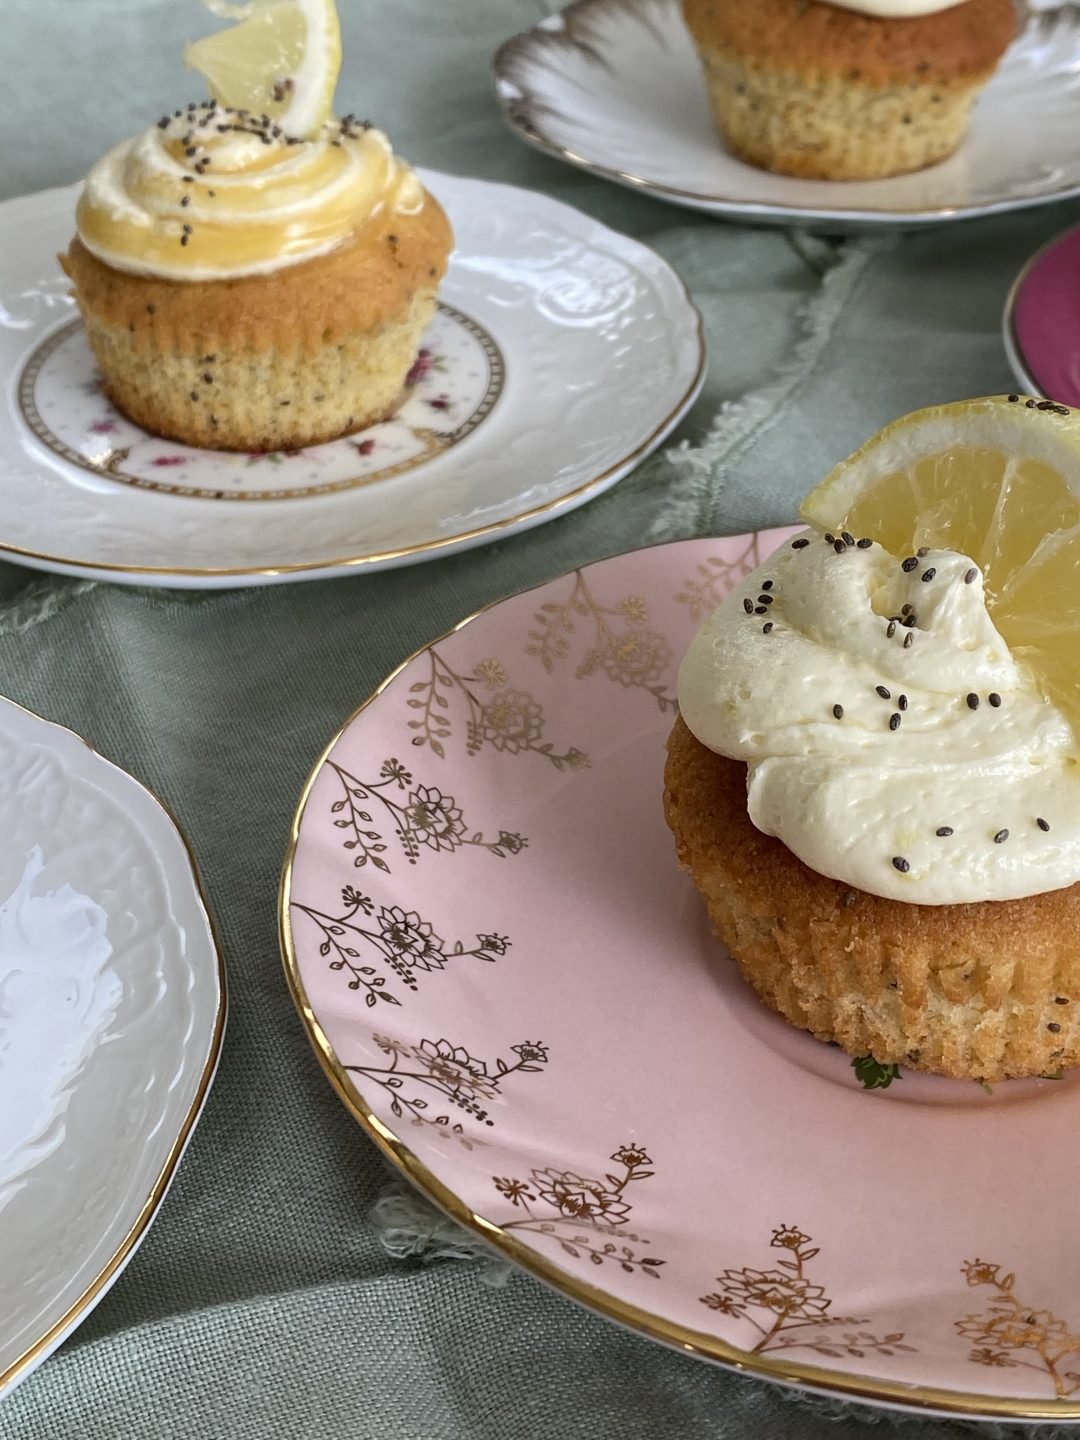 Lemon curd and chia seed muffins